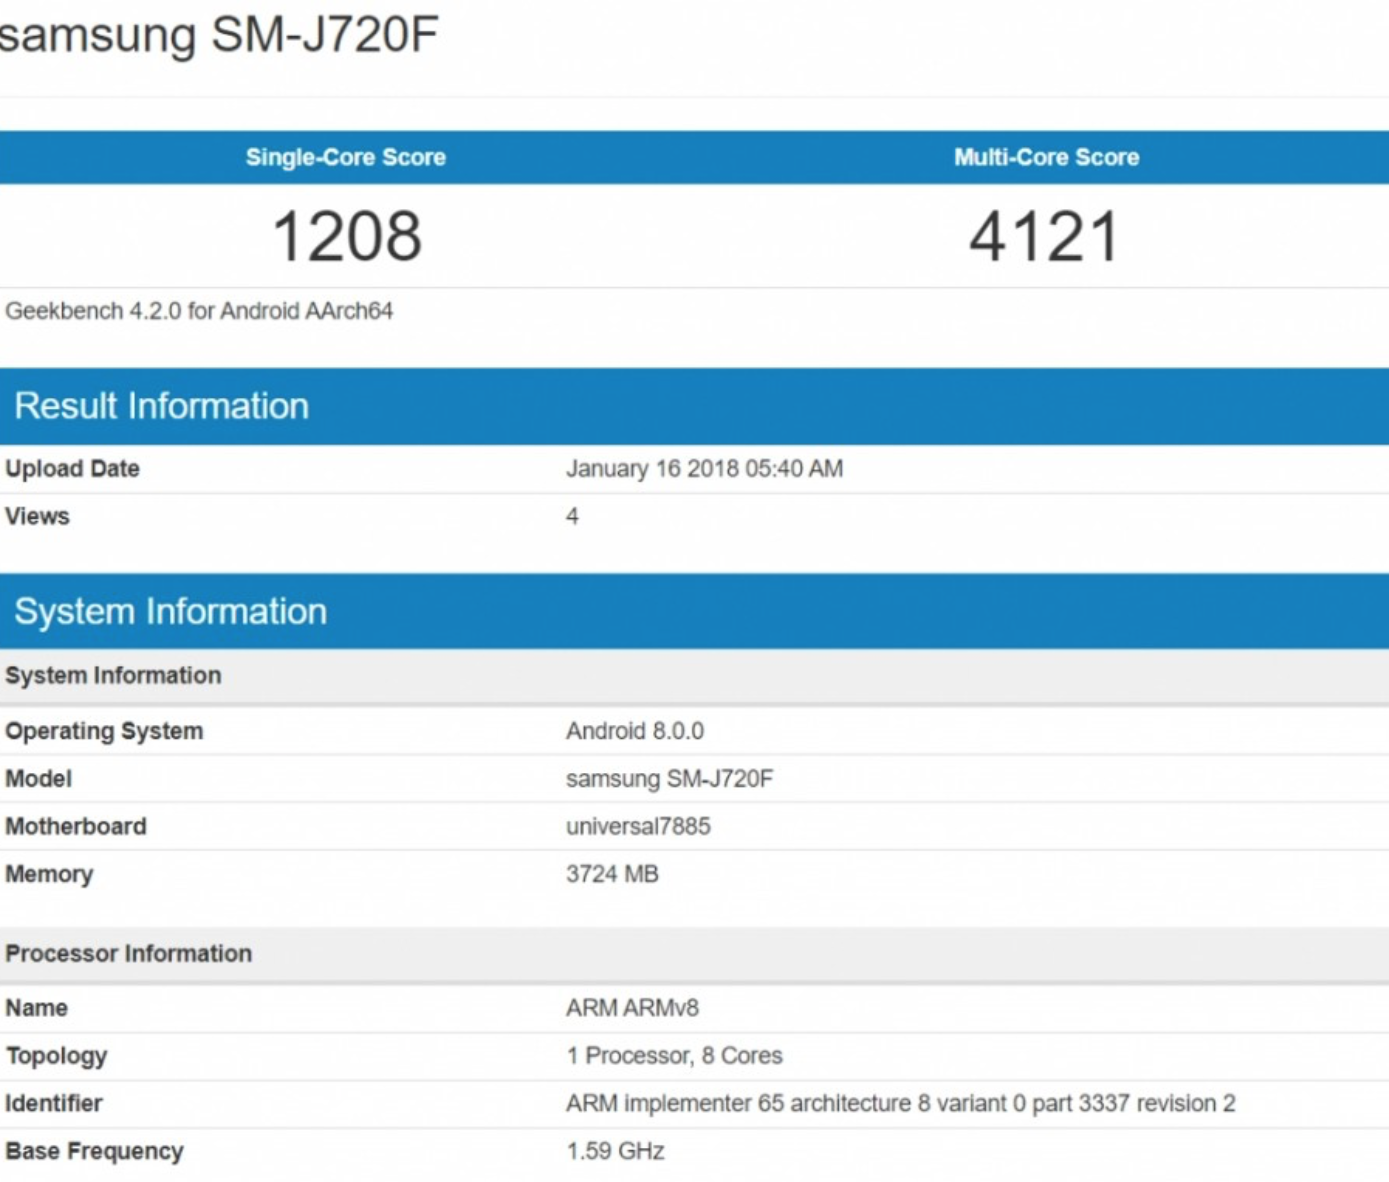 Screen Shot 2018 01 20 at 7.51.12 PM - Samsung Galaxy J8 Spotted In the Wild, An Out-of-the-Box Android Oreo